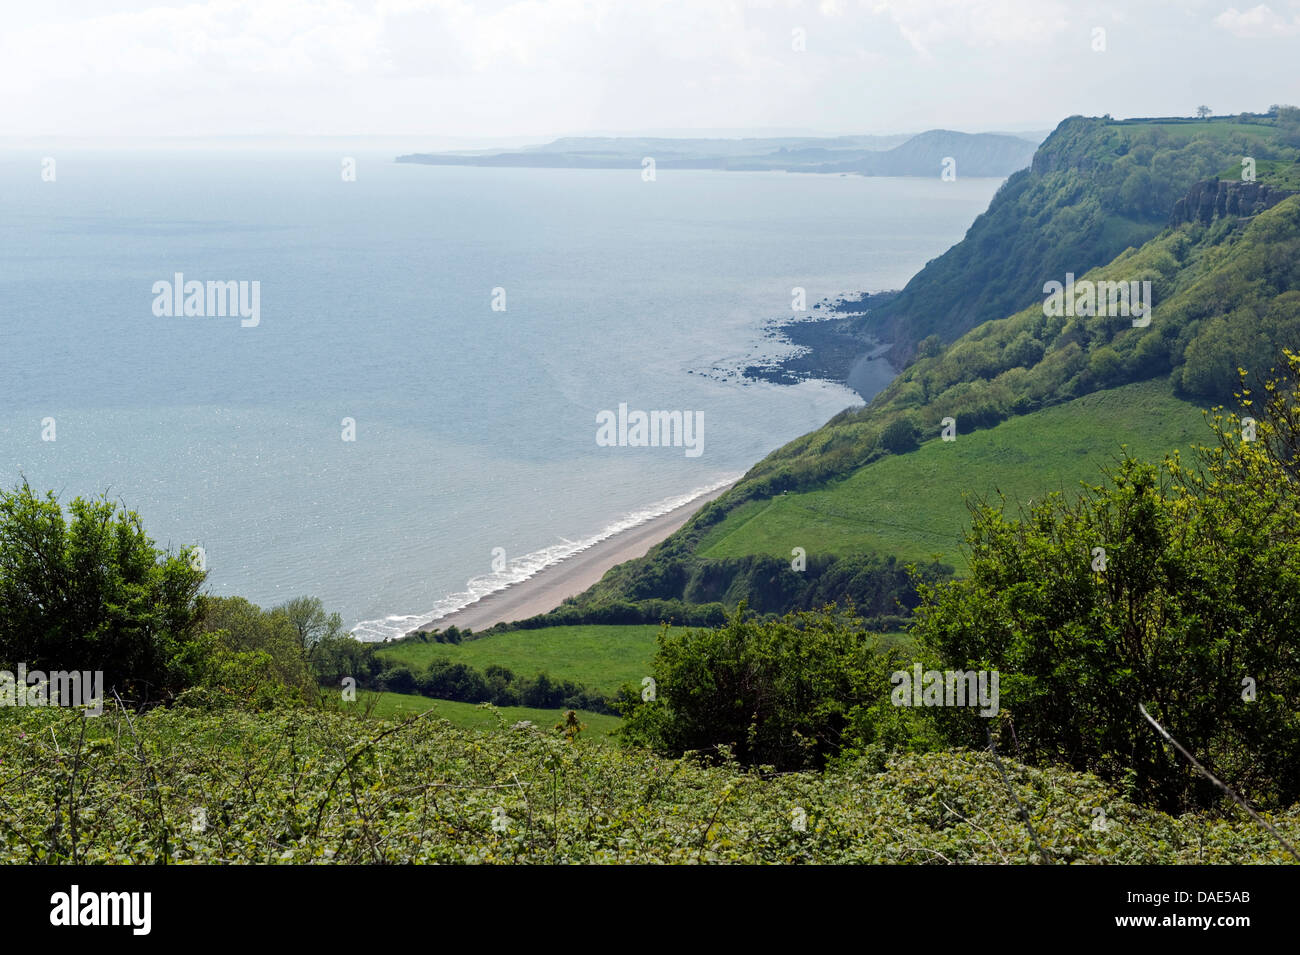 Jurassic Coast at Weston Mouth near Sidmouth on a fine early summer day with alexanders flowering and trees in early - Stock Image